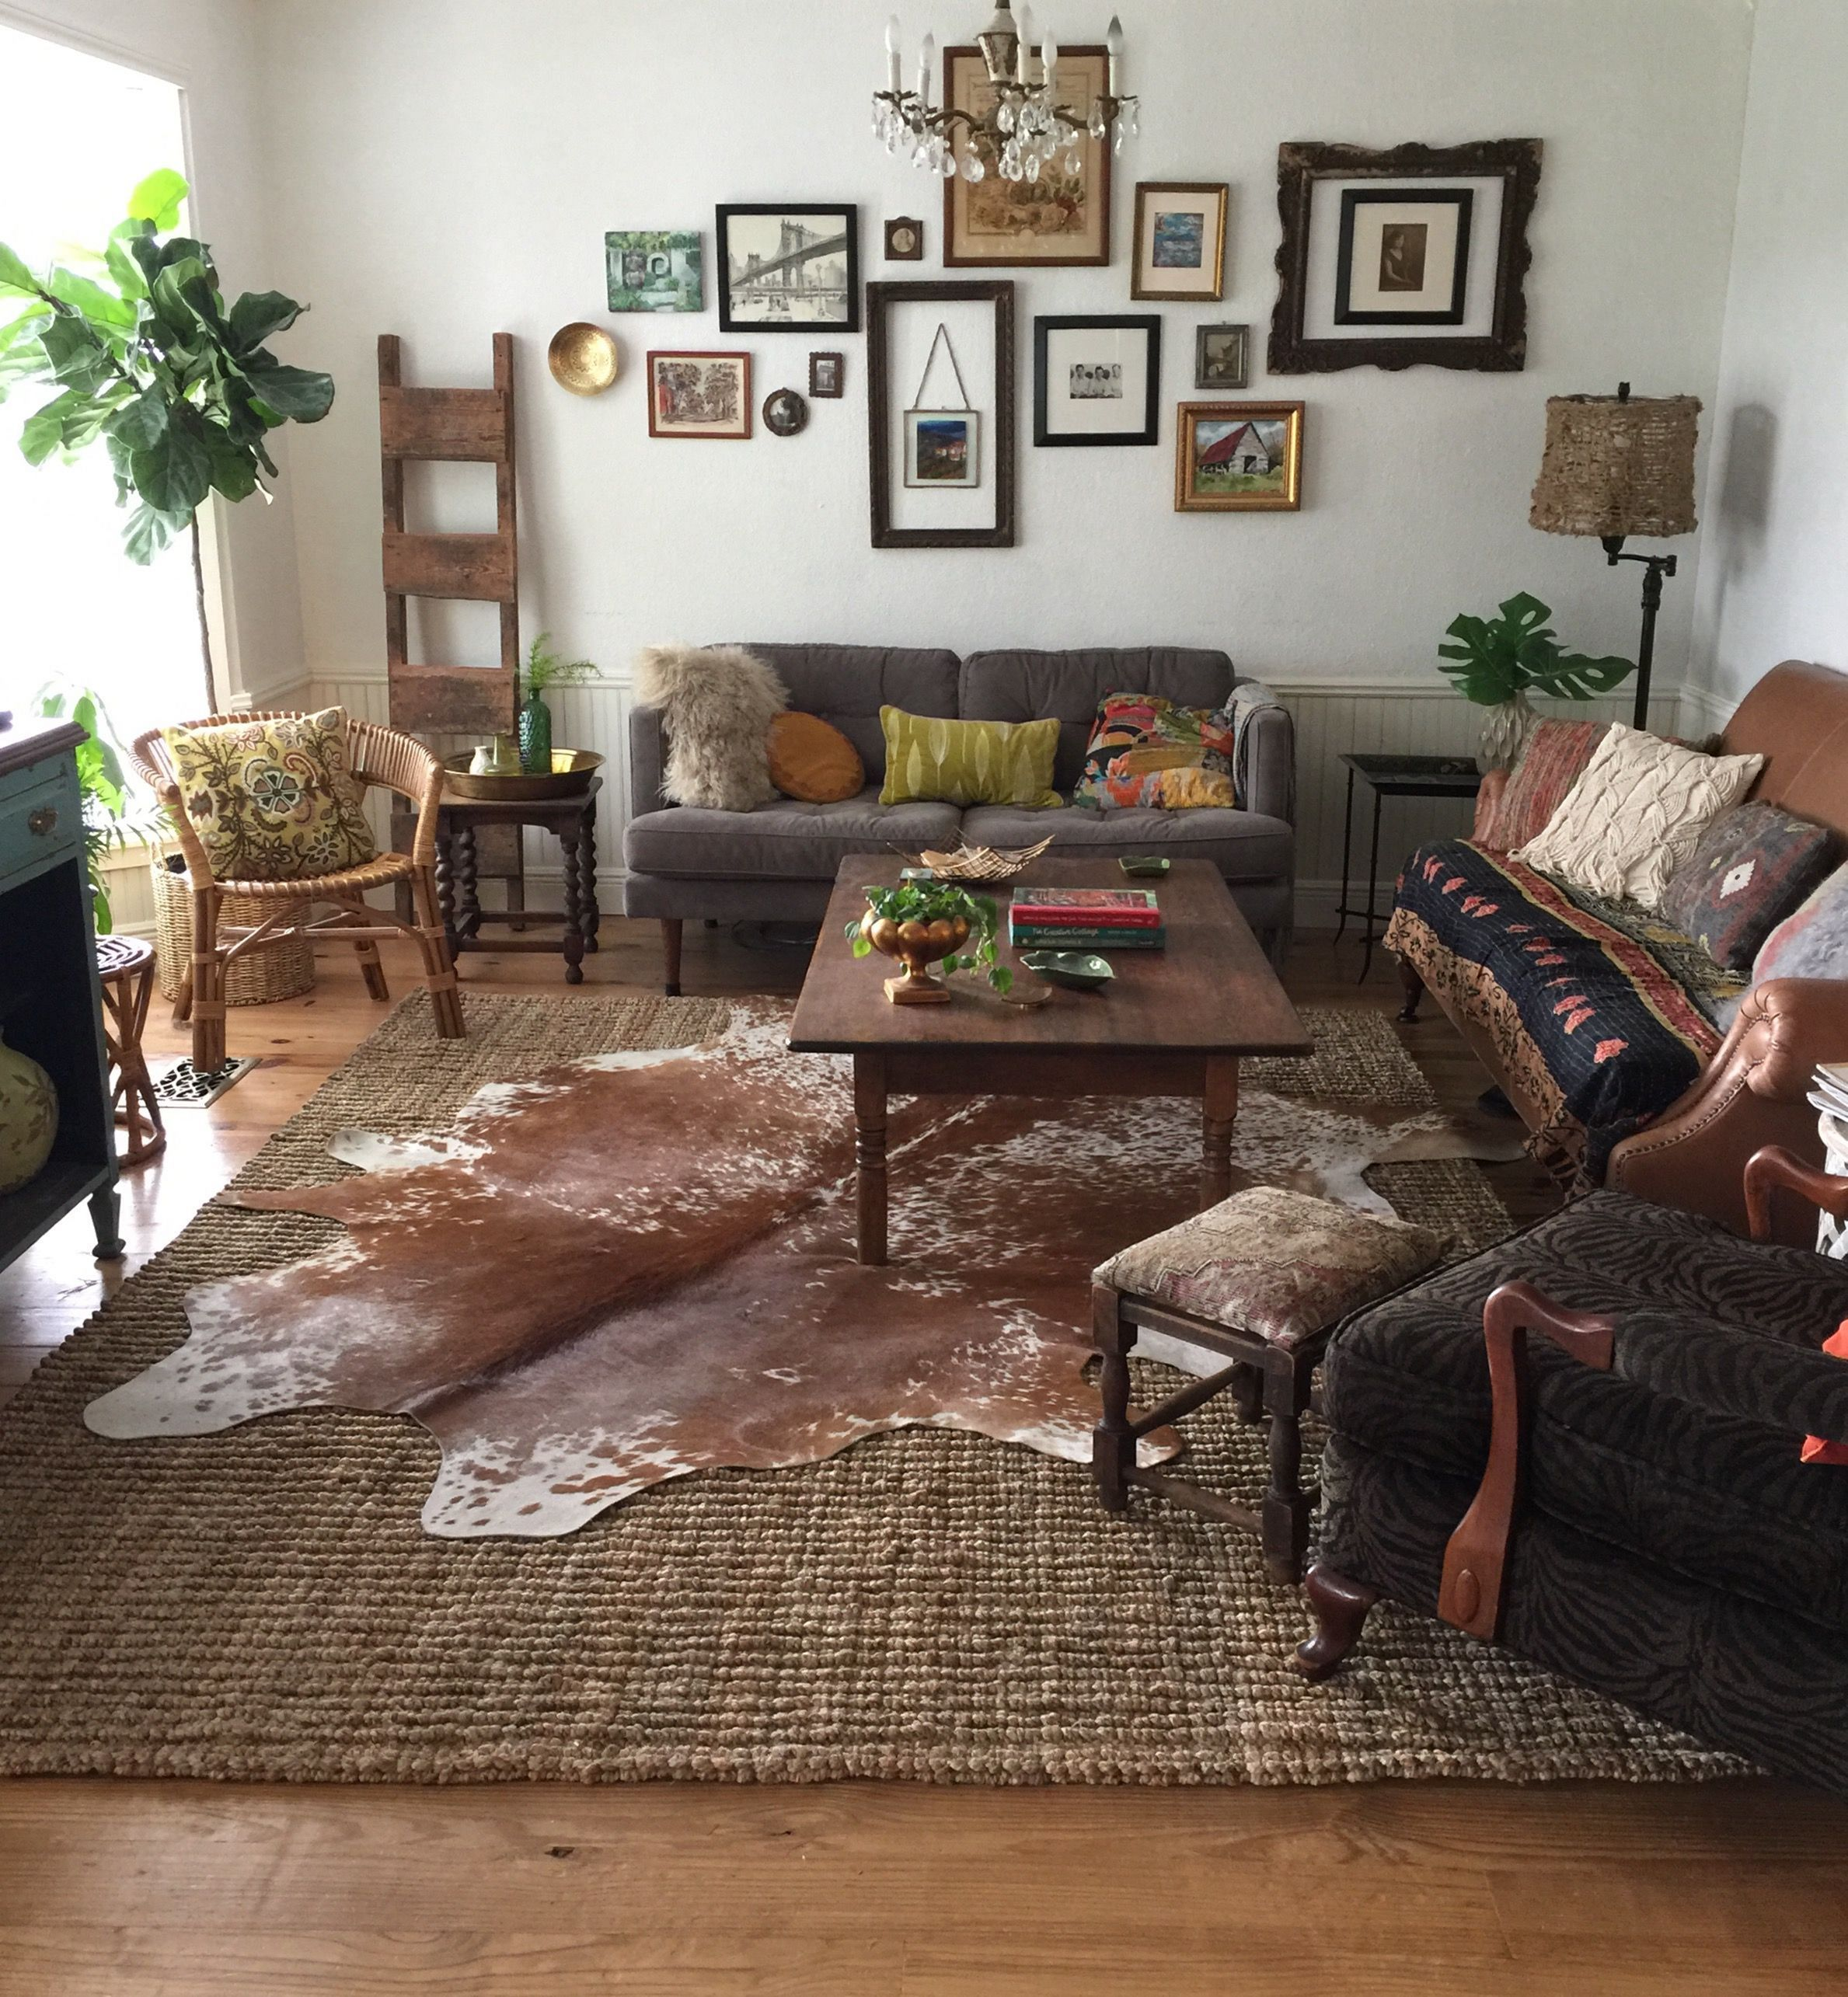 Pottery Barn Living Room With Carpet And Decorative Plant: Pin By Jean Peters On Home Decor